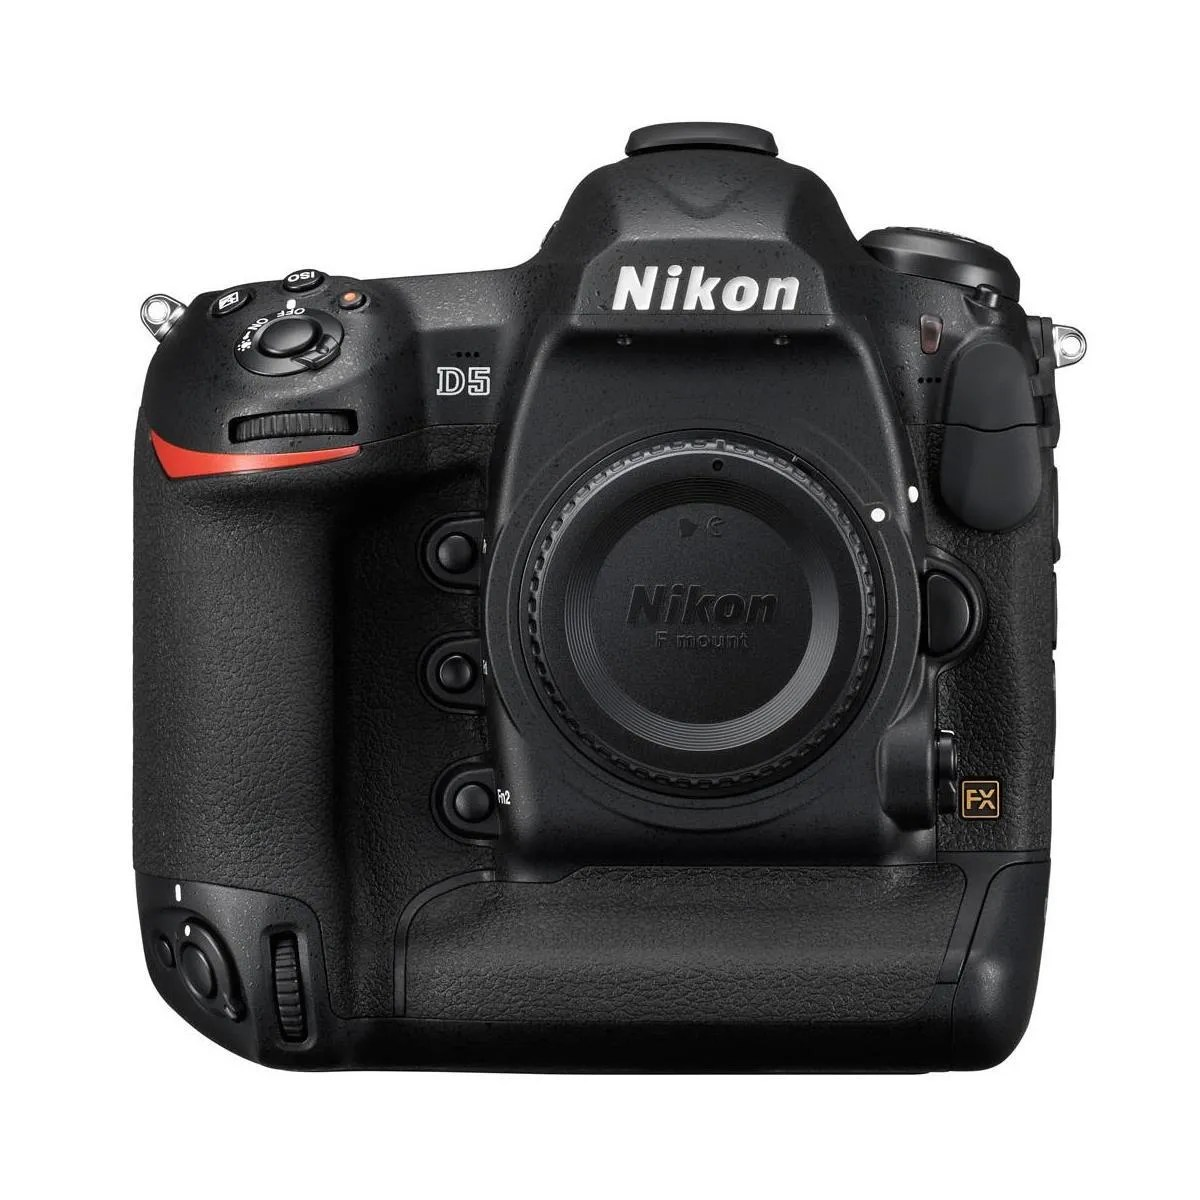 Nice Nikon Is An Camera Packed Almost Any Kind 2016 Adorama Learning Center Features That Allow You Totake S Shooting Most Expensive Dslr Cameras dpreview Most Expensive Camera